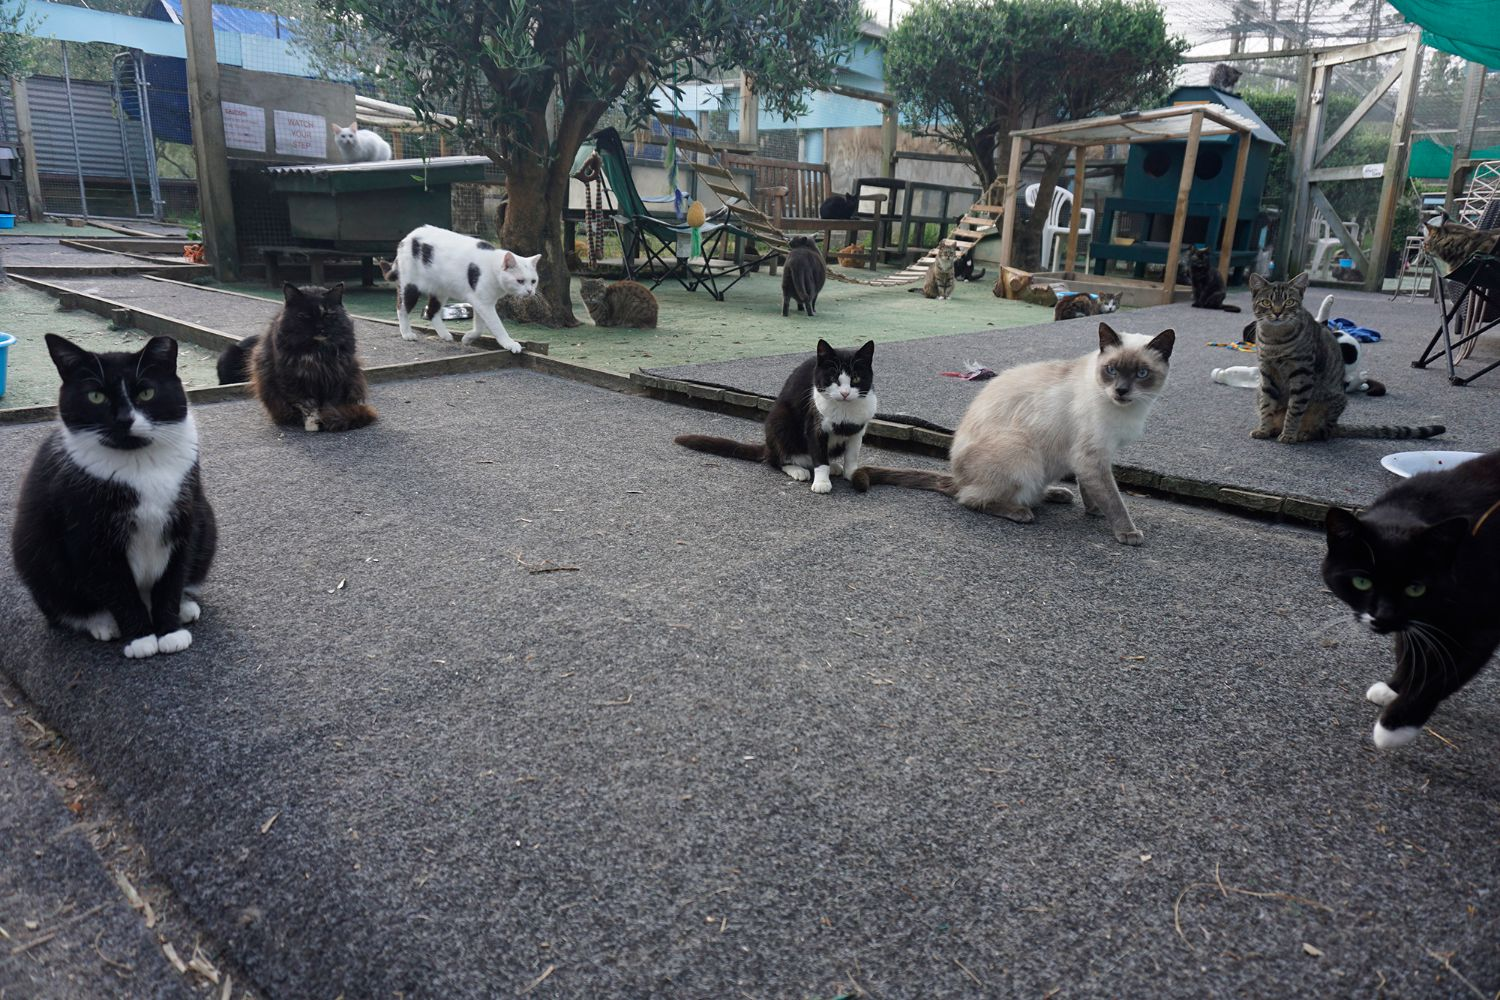 The New Zealand Cat Foundation